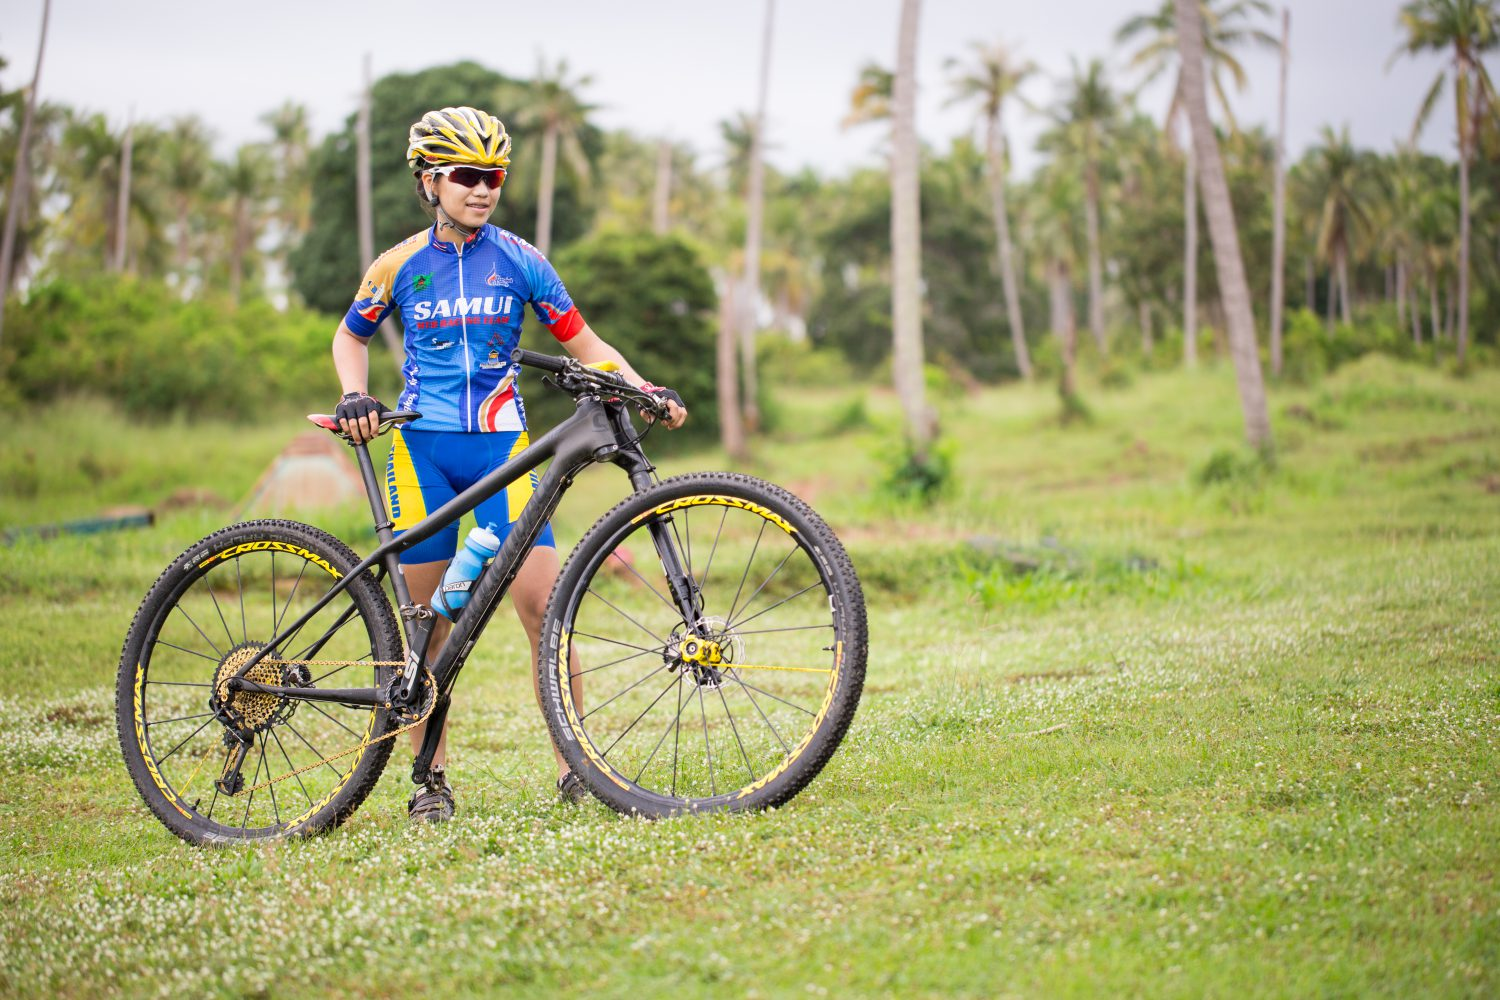 Natalie Panyawan mountainbiking Samui